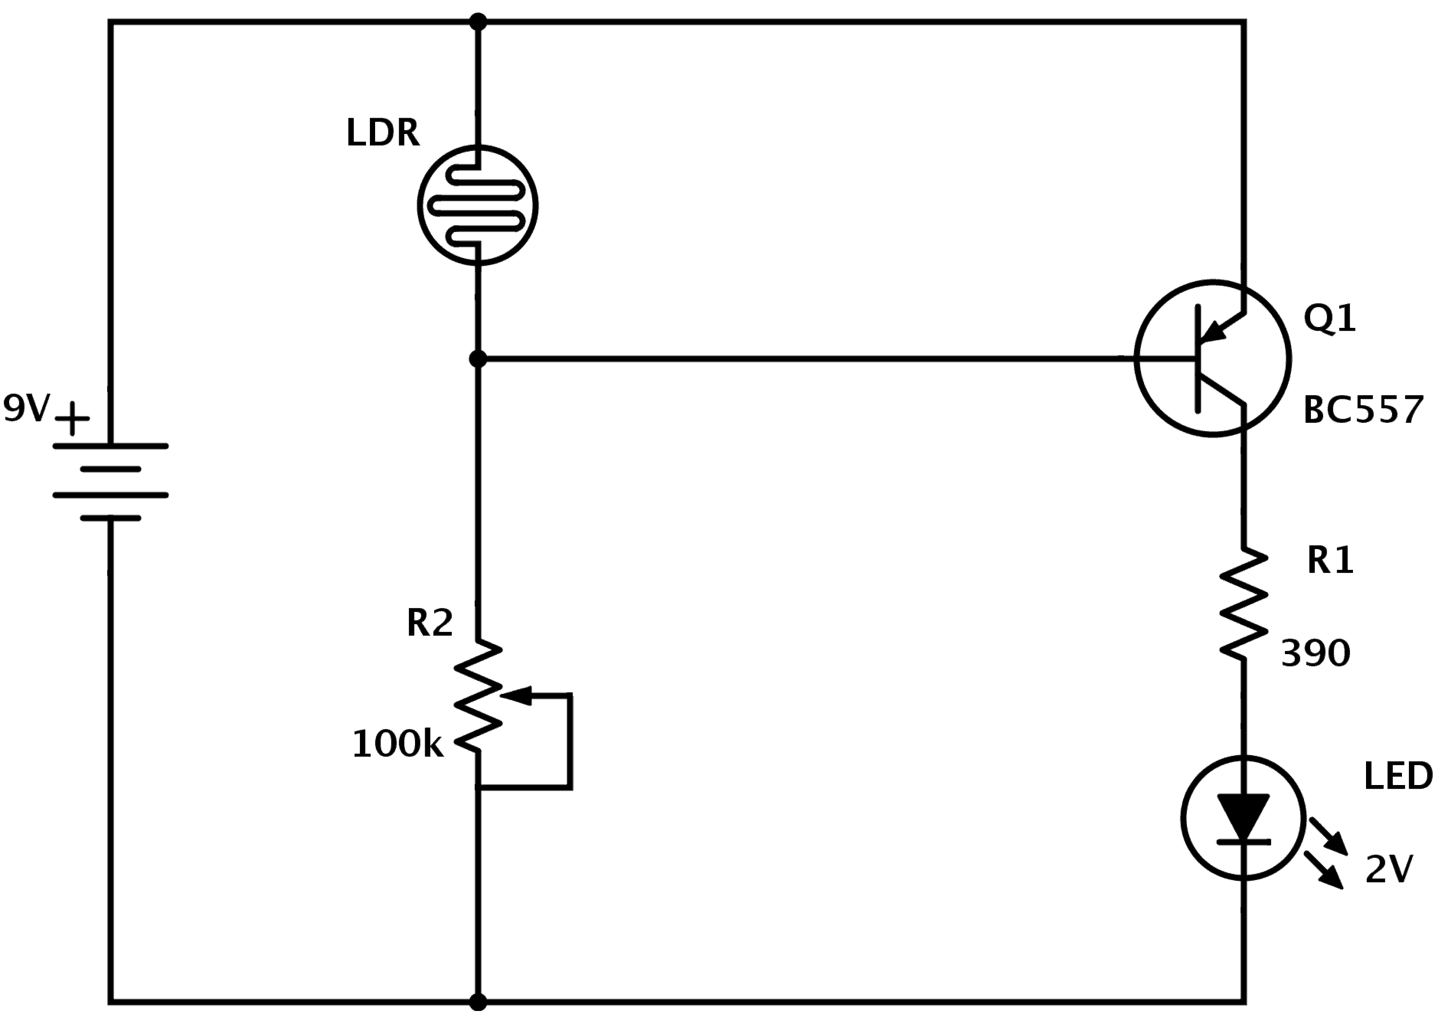 7 Round Wiring Diagram Break Away Ldr Circuit Build Electronic Circuits With Pnp Transistor Dark Detector